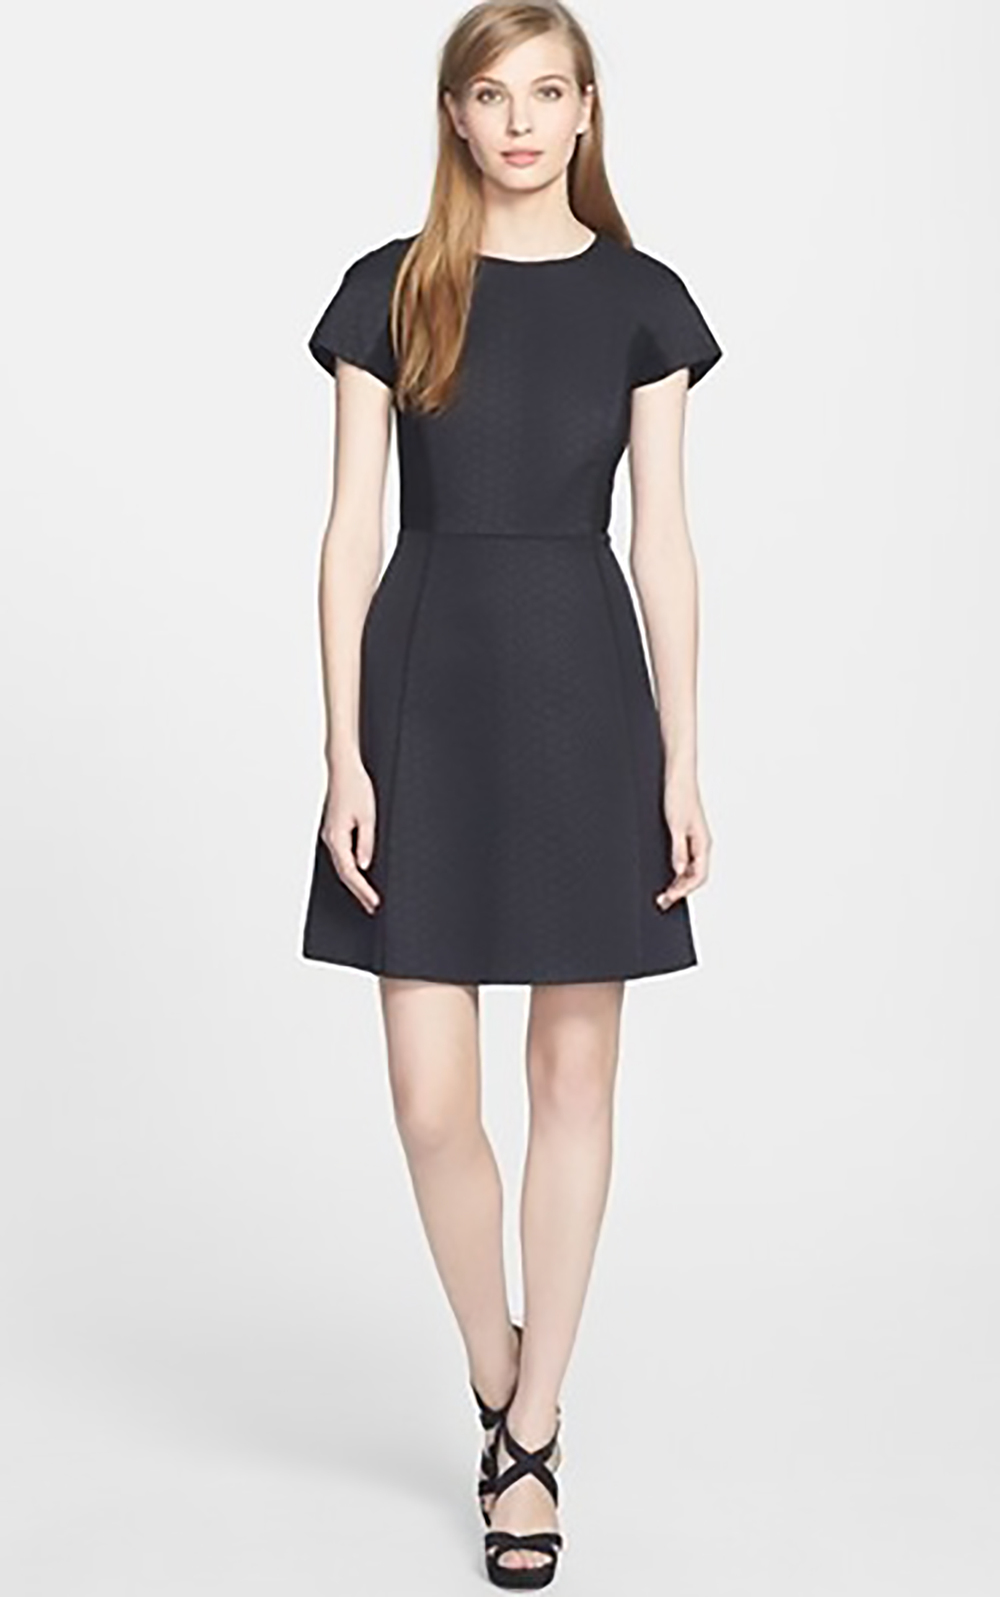 nordstrom rebecca taylor snake jacquard fit and flare dress holiday party 1500.jpg